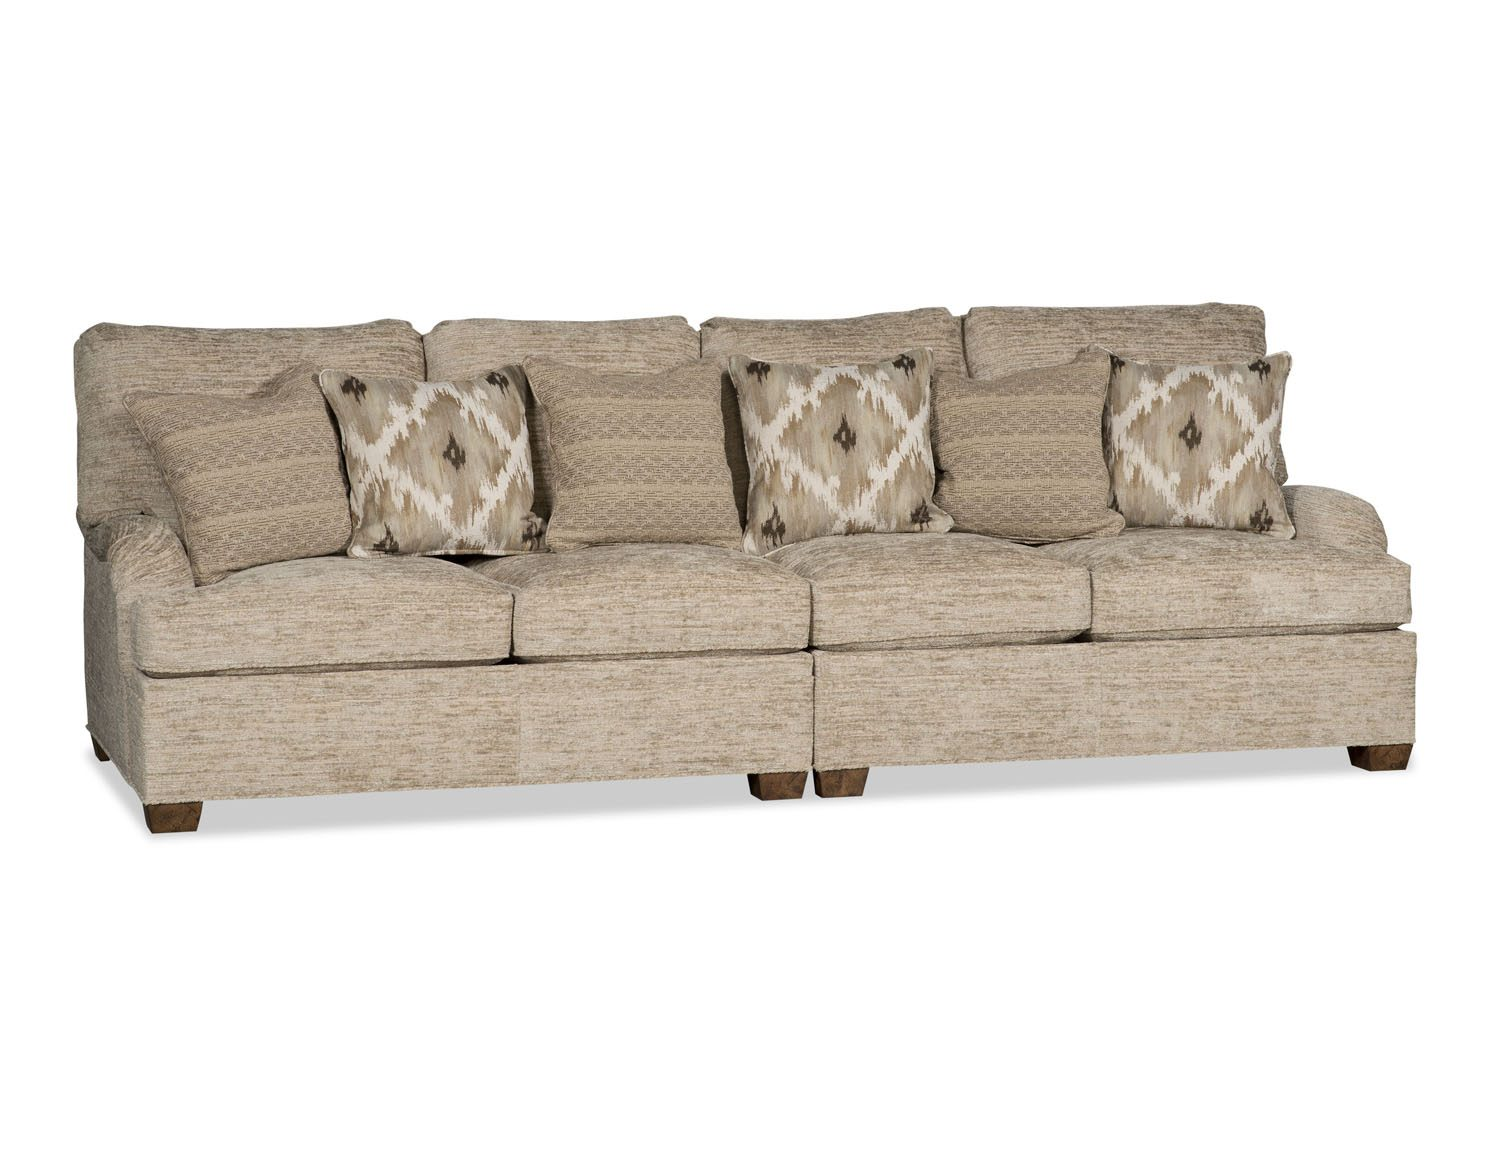 35G CHOICES GRANDE SECTIONAL